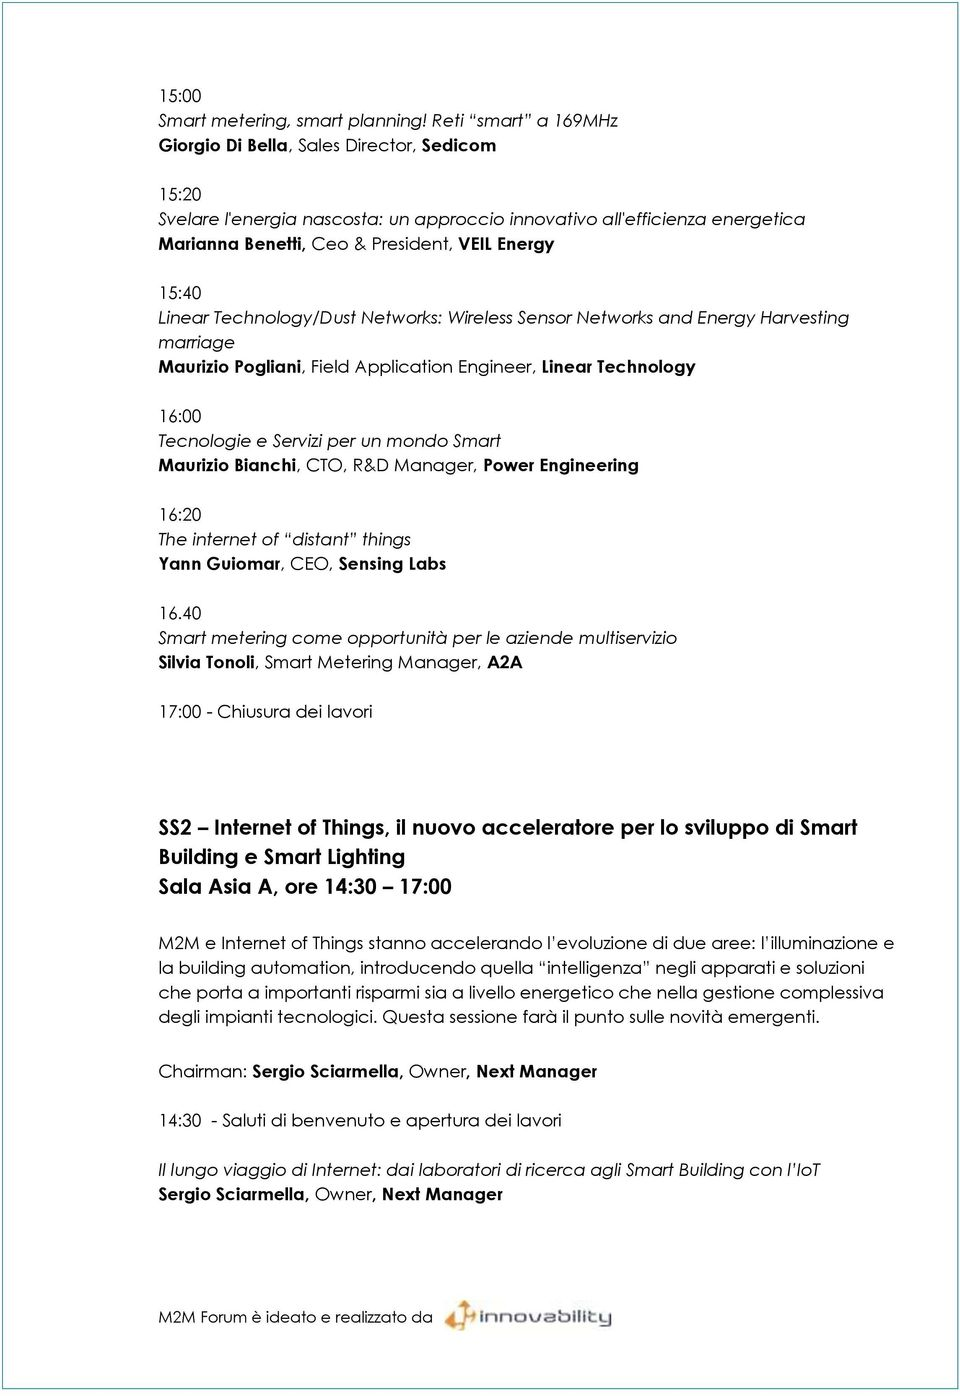 Linear Technology/Dust Networks: Wireless Sensor Networks and Energy Harvesting marriage Maurizio Pogliani, Field Application Engineer, Linear Technology 16:00 Tecnologie e Servizi per un mondo Smart